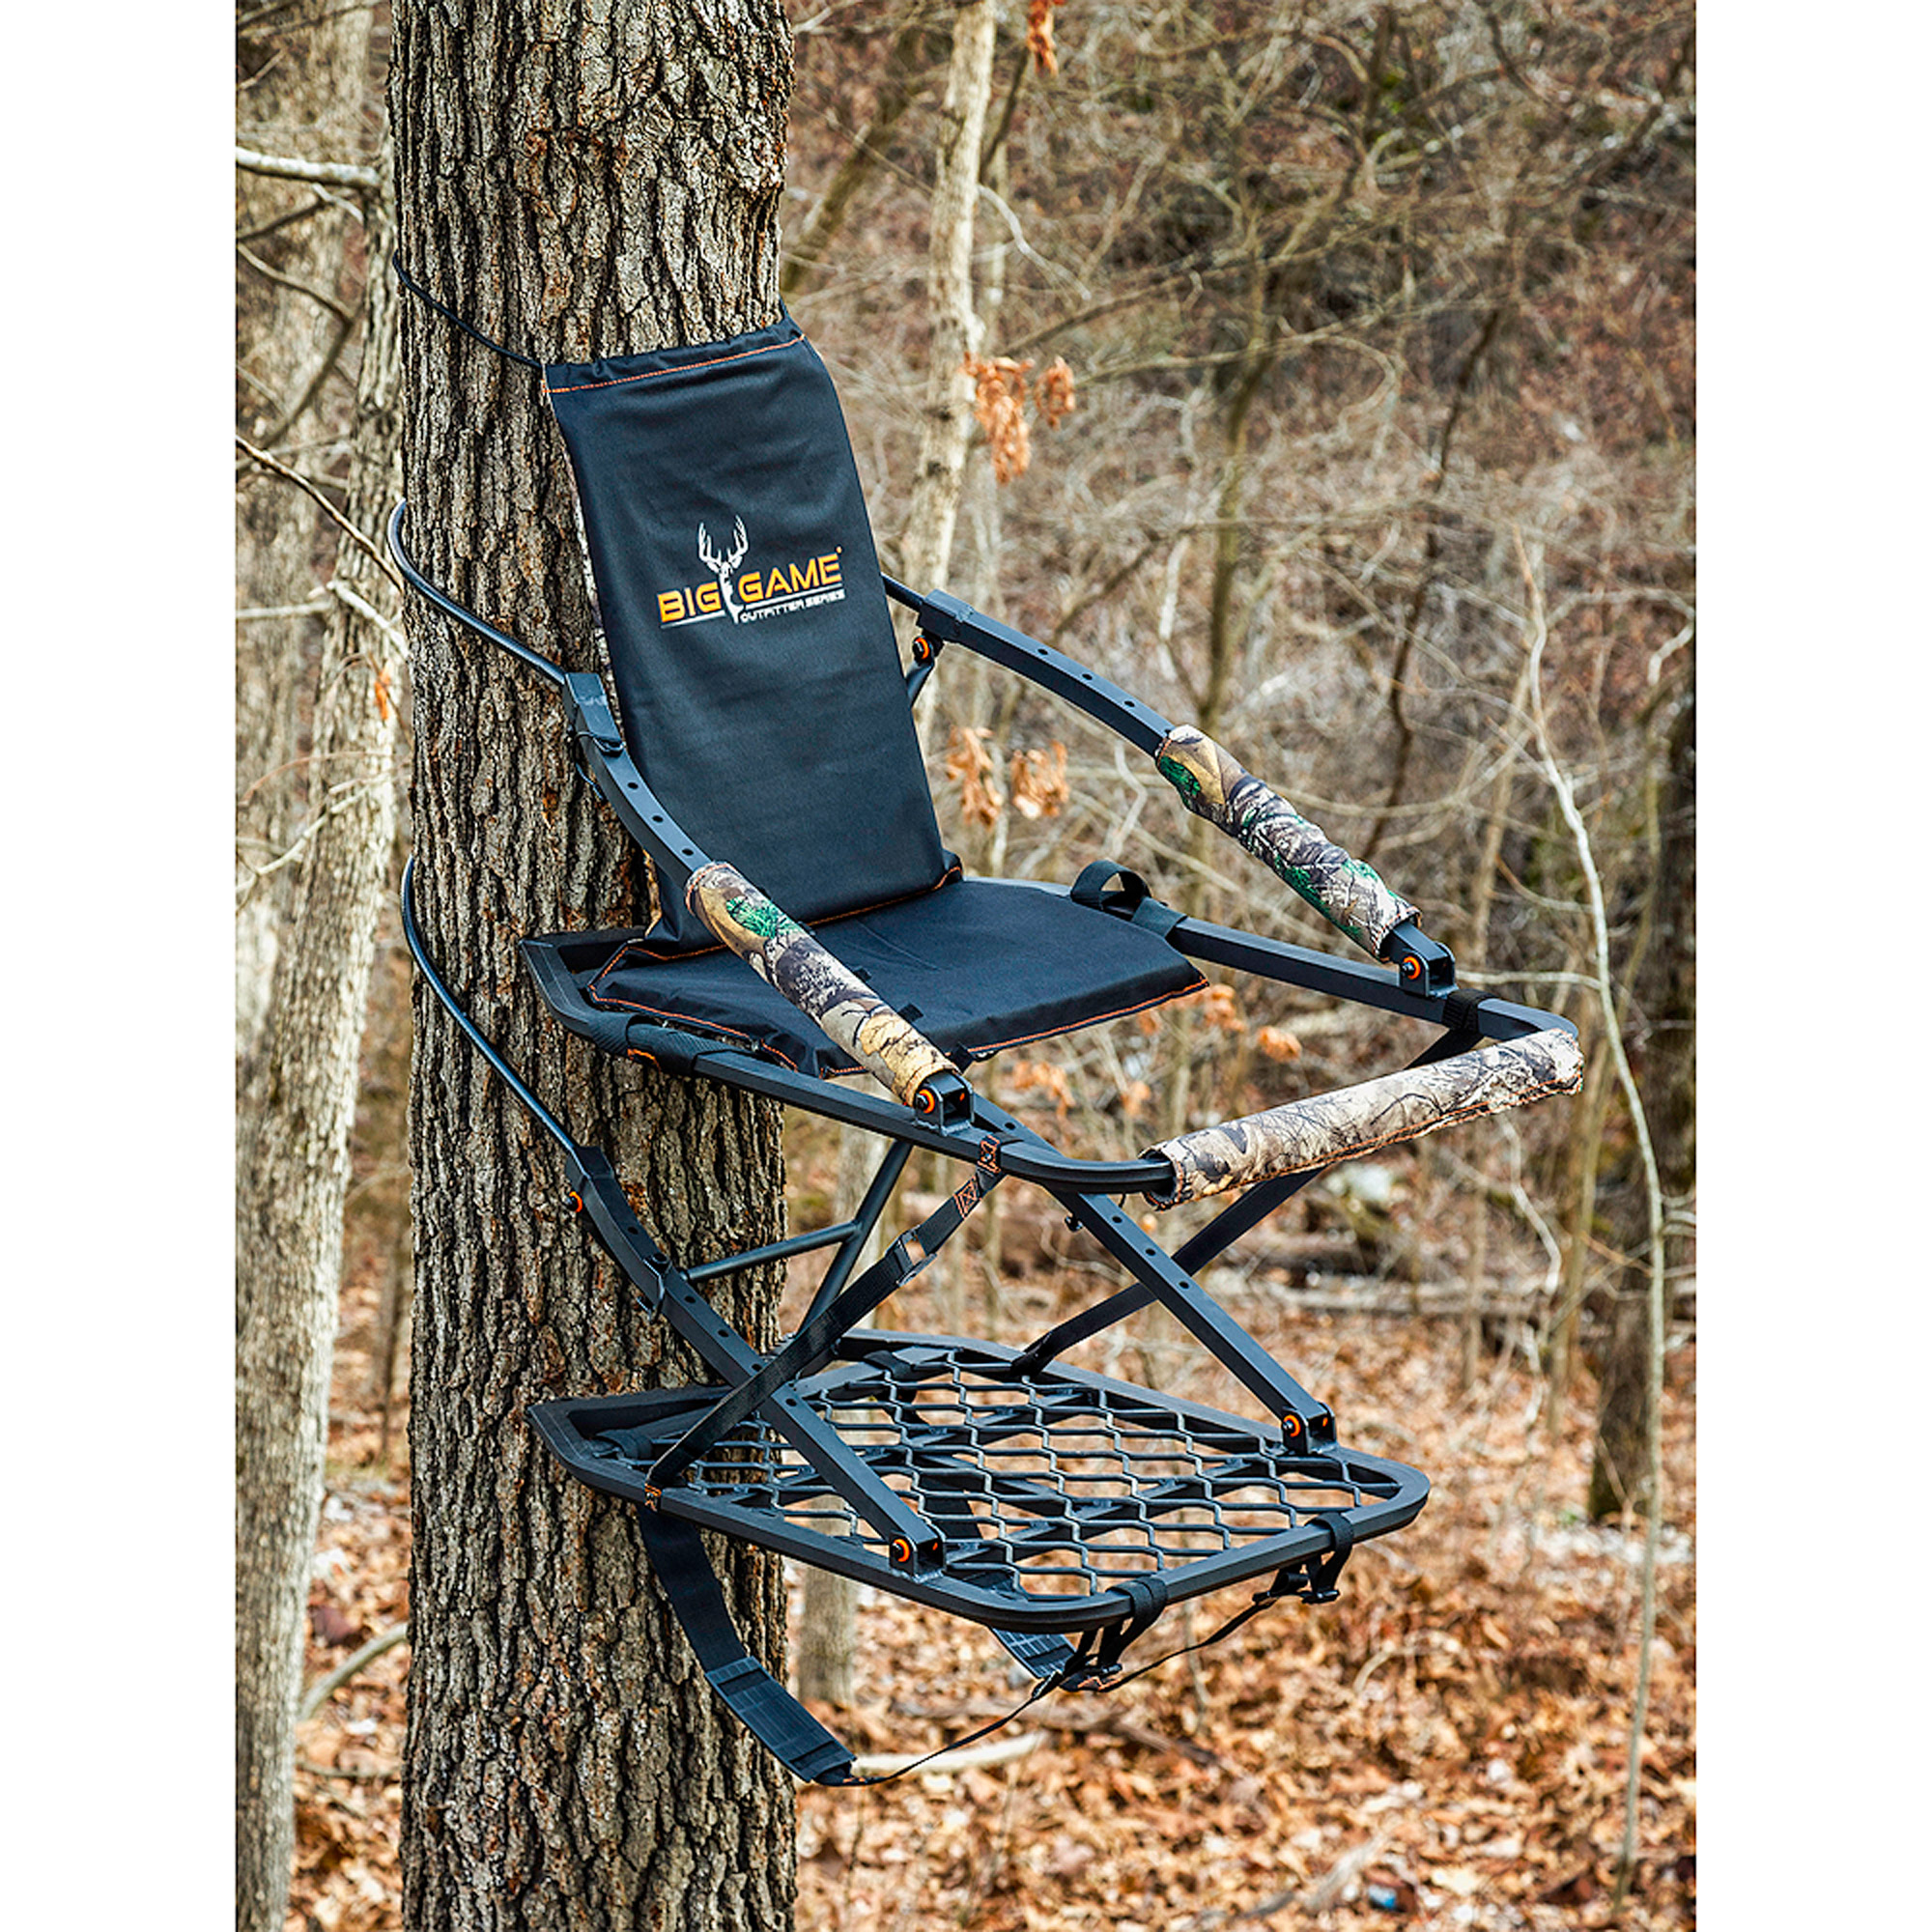 Big Game Deluxe Lightweight Aluminum Climber with Padded Cushion thumbnail